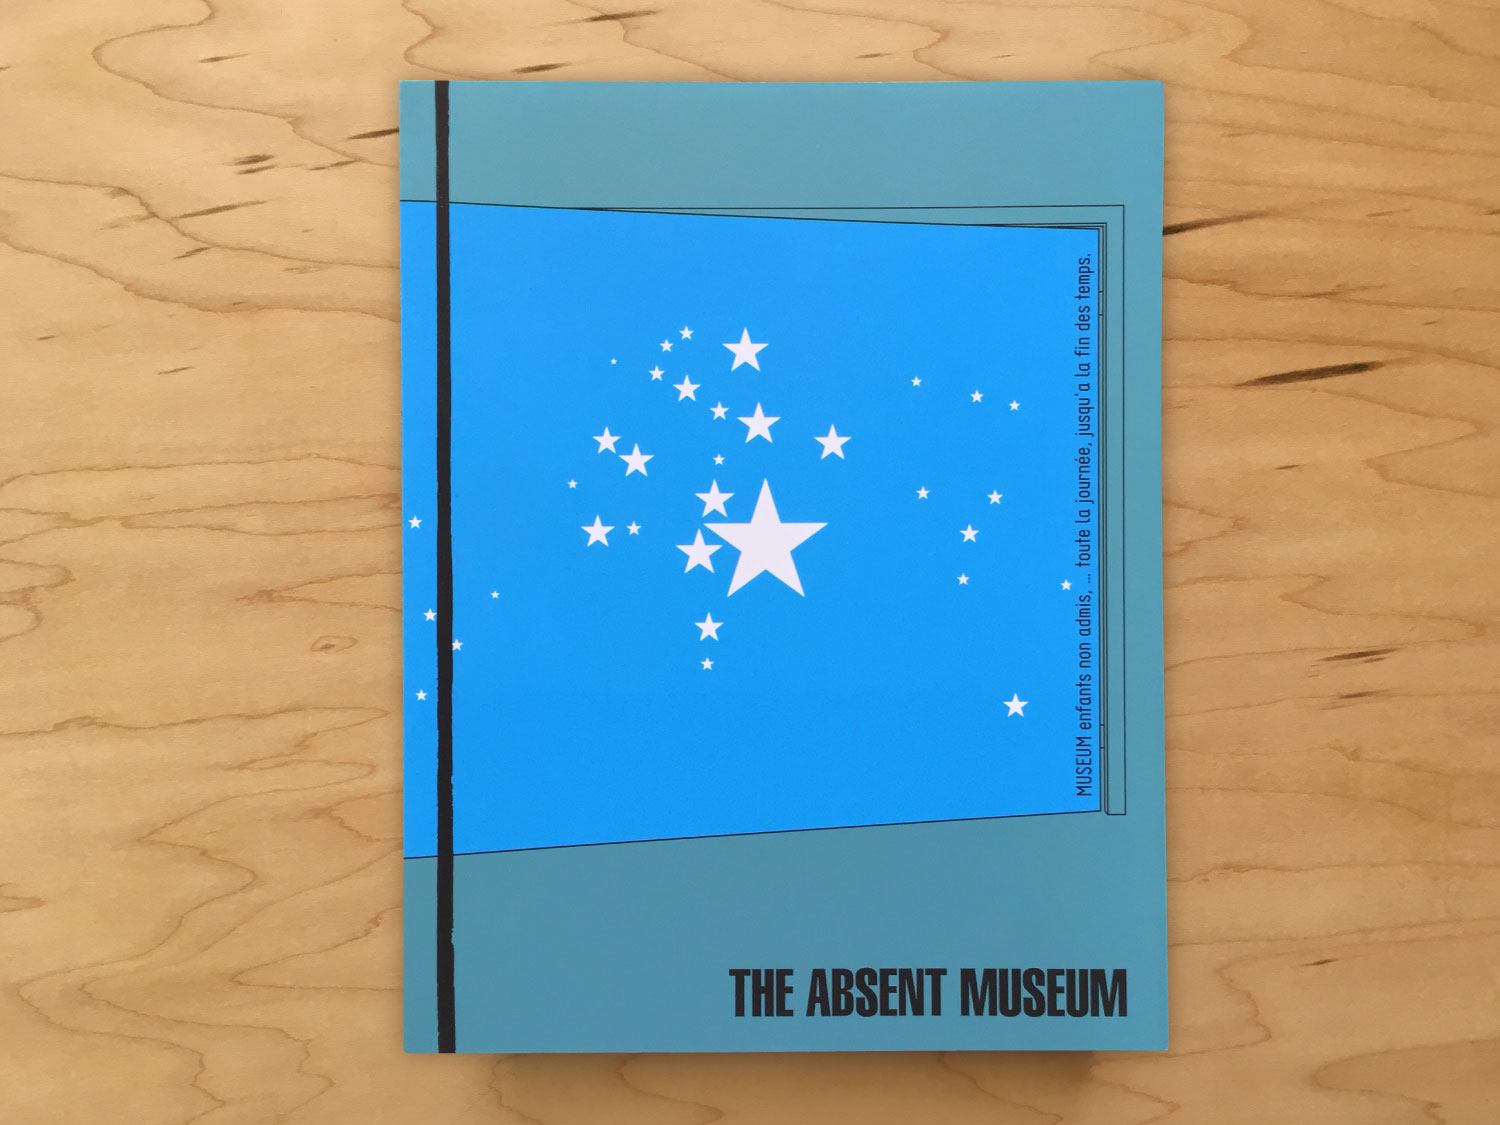 CRB-Program-Intro-Image-The-Absent-Museum.jpg